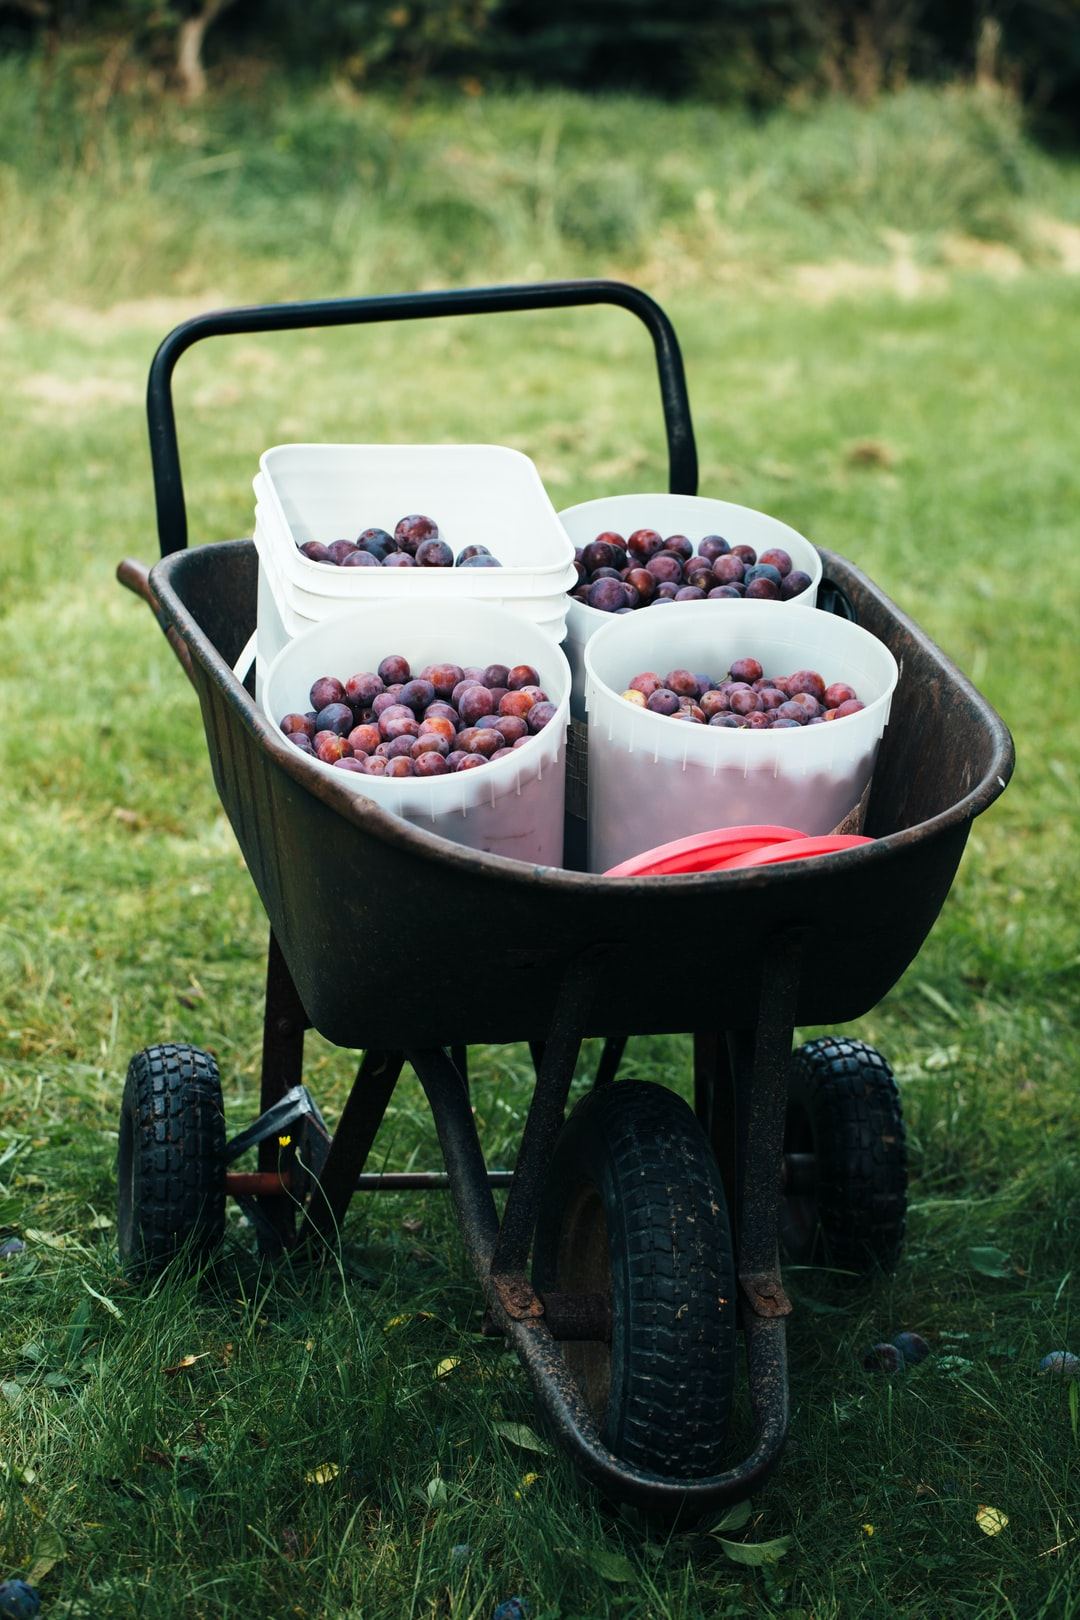 Buckets of plums picked from my friend's parent's orchard in Mabou, Cape Breton.